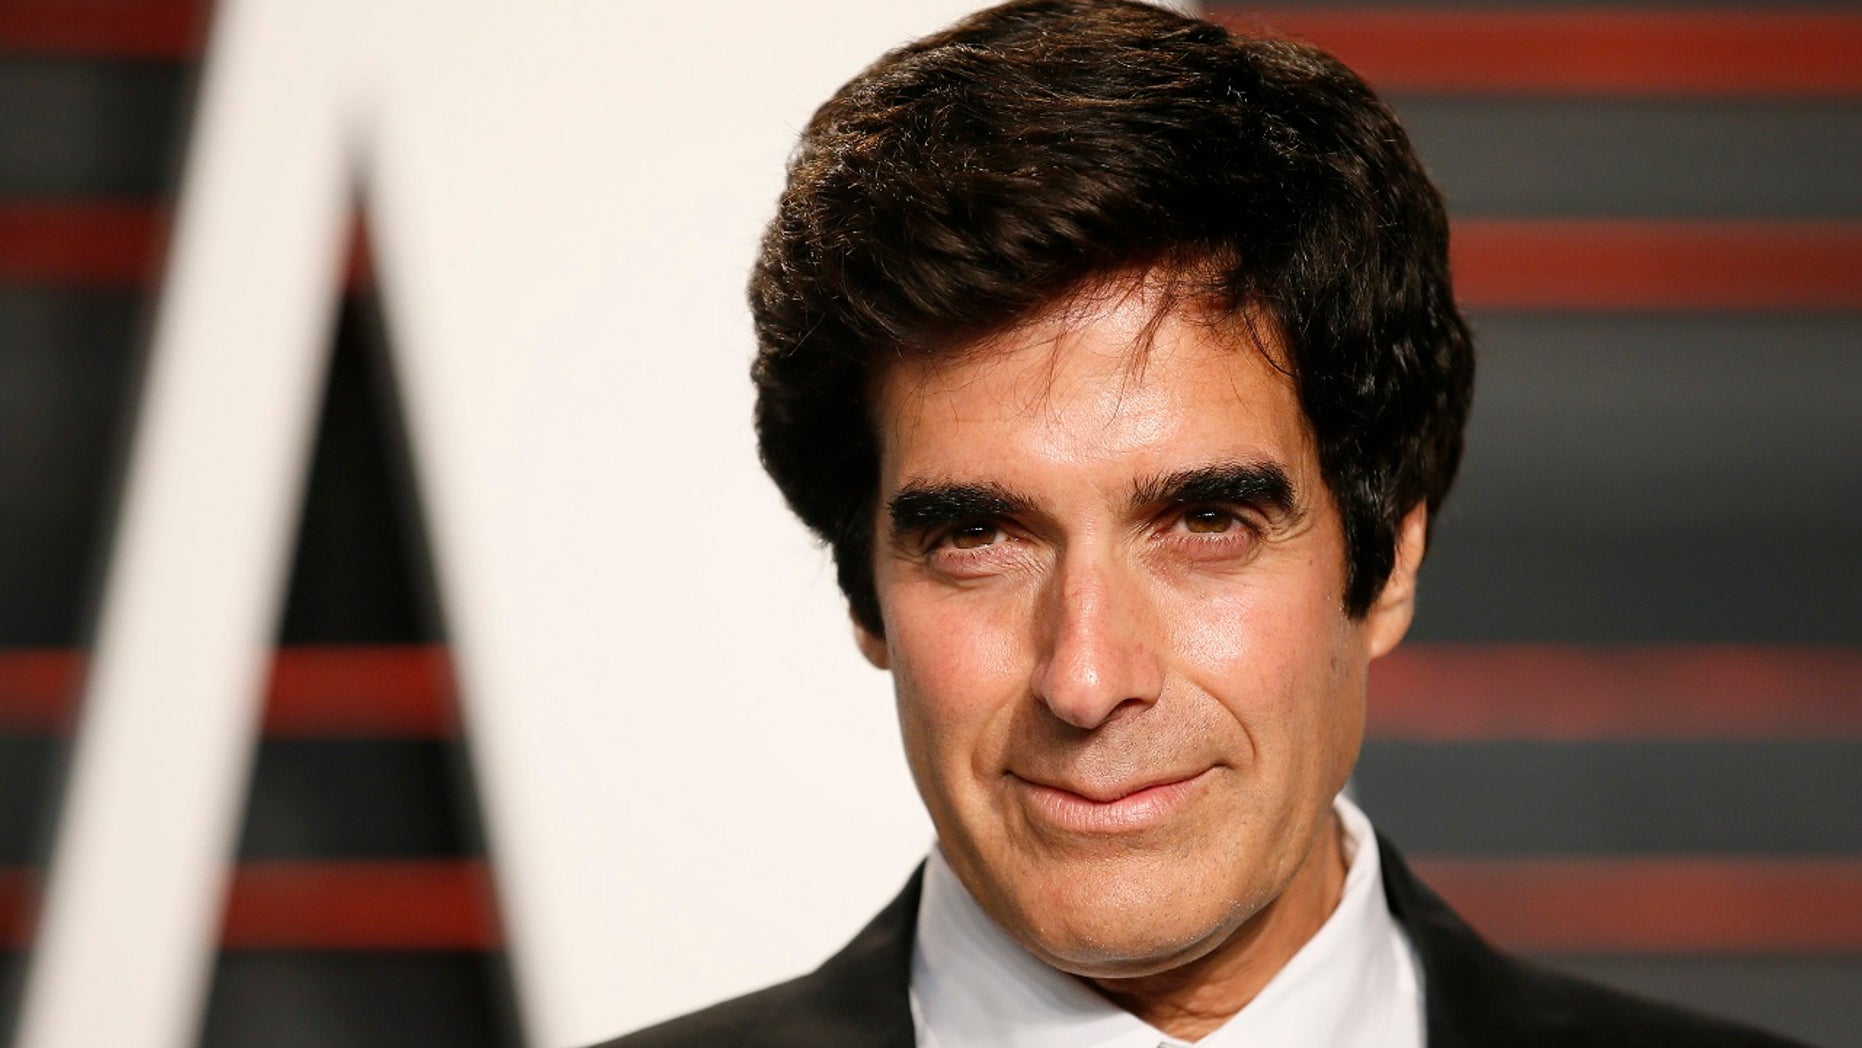 Former model Brittany Lewis accused magician David Copperfield of drugging, and sexually assaulting her in 1988 when she was 17.